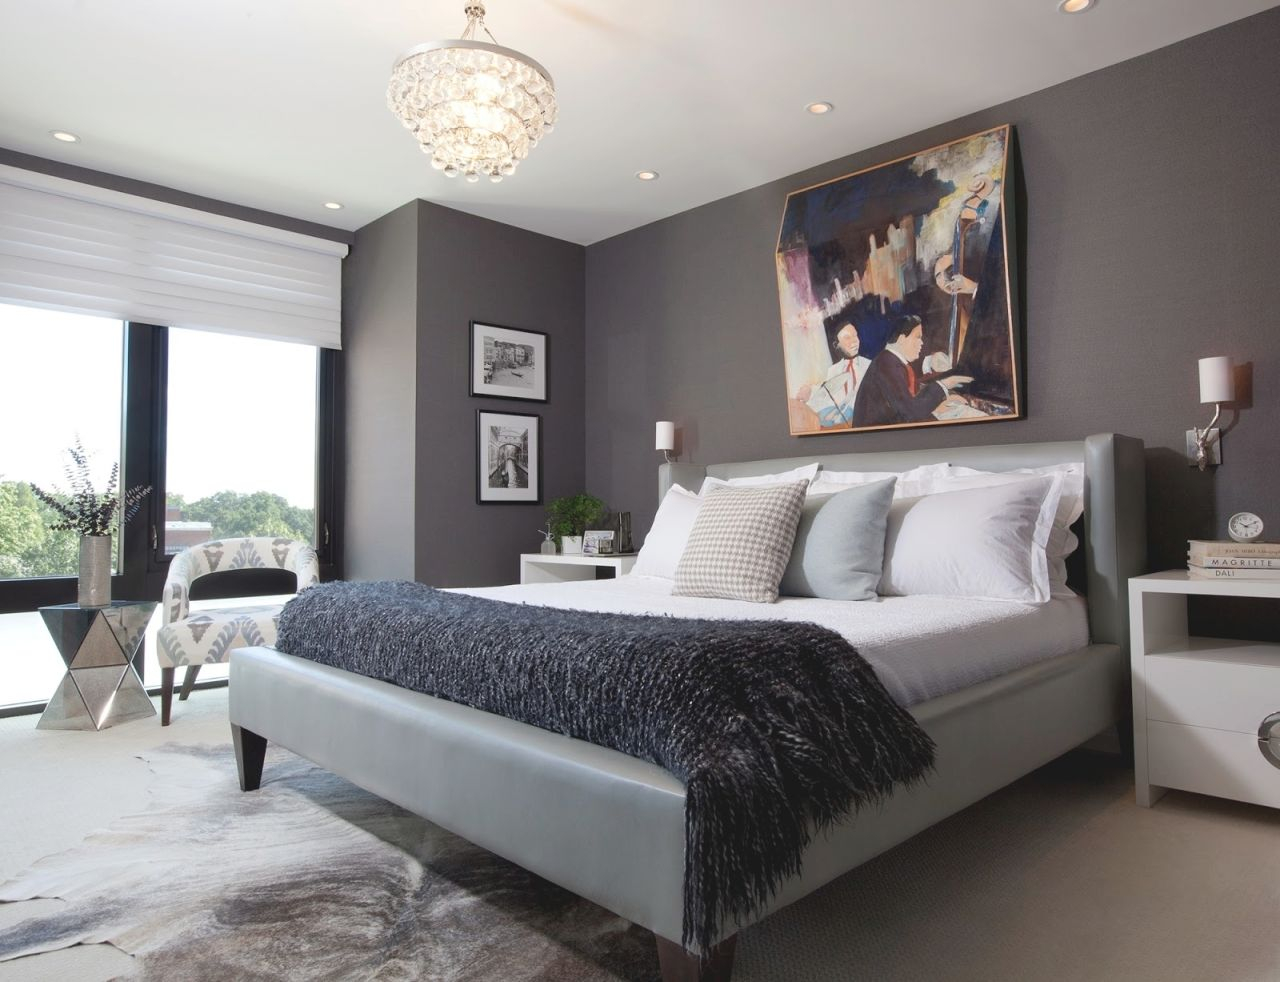 Bedroom : Bedroom Decor Ideas Gray Home Pleasant Then regarding Decorating Ideas For A Bedroom